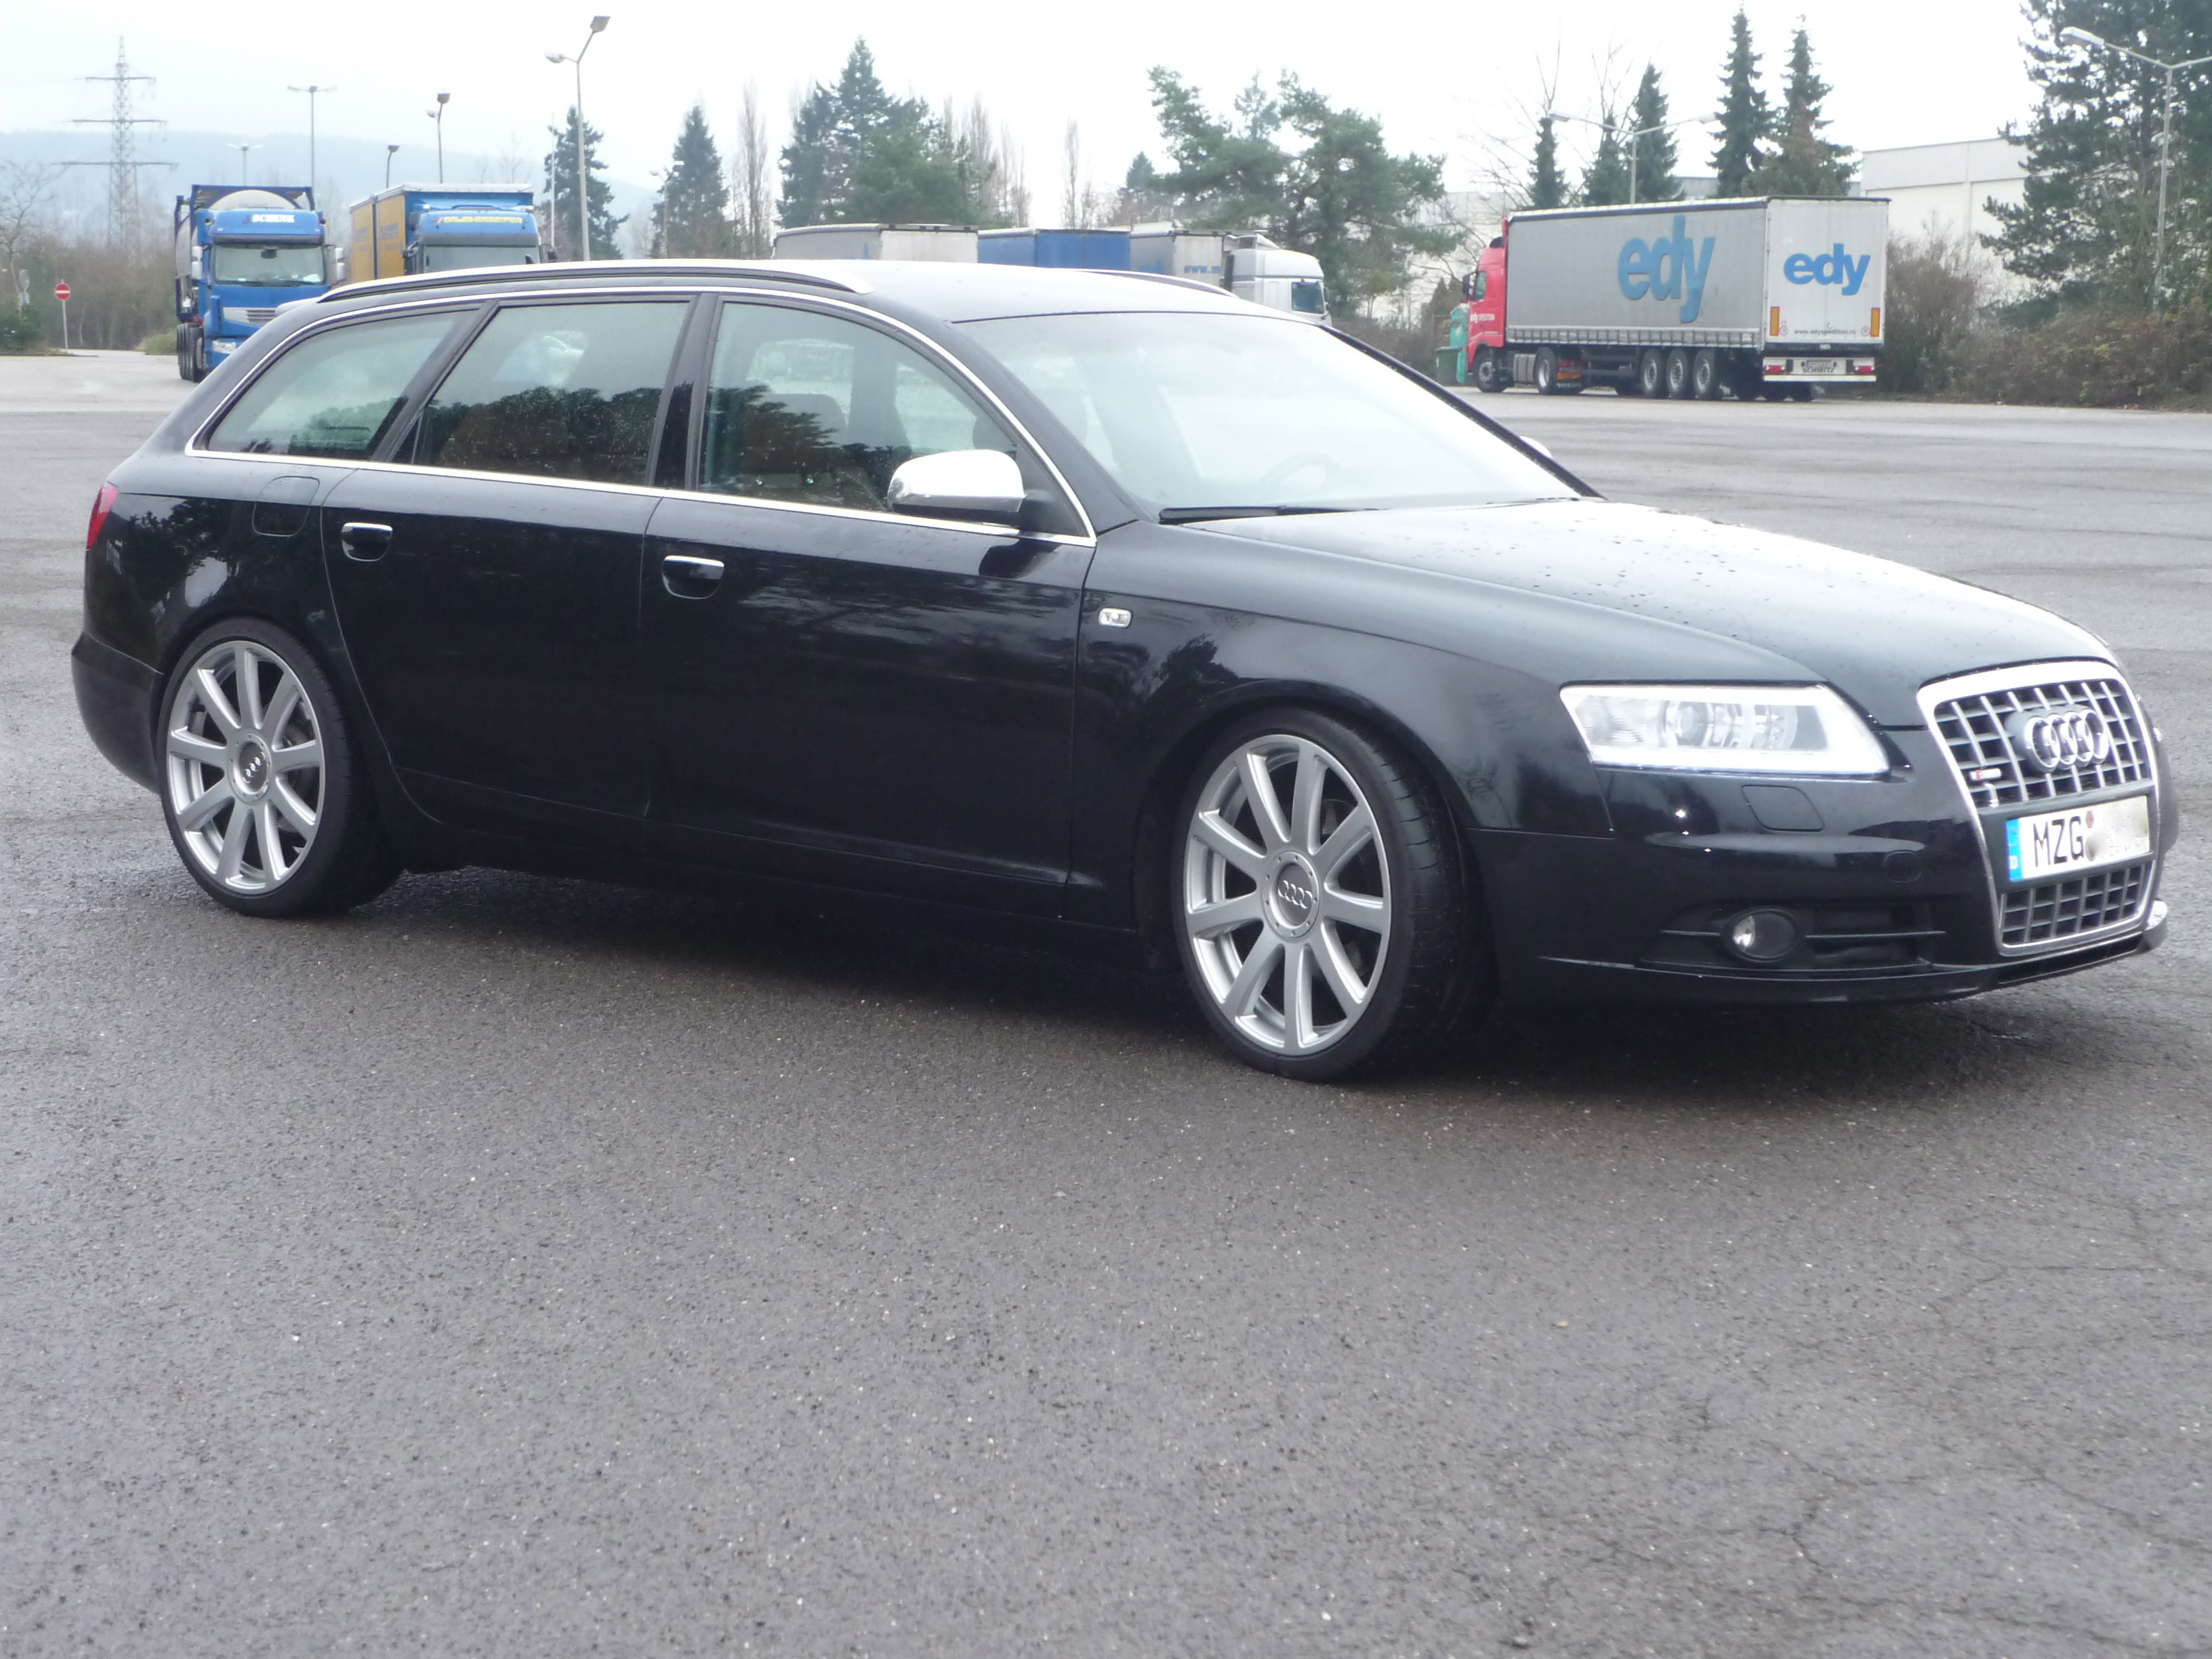 2013 audi a6 avant 4f c6 pictures information and. Black Bedroom Furniture Sets. Home Design Ideas